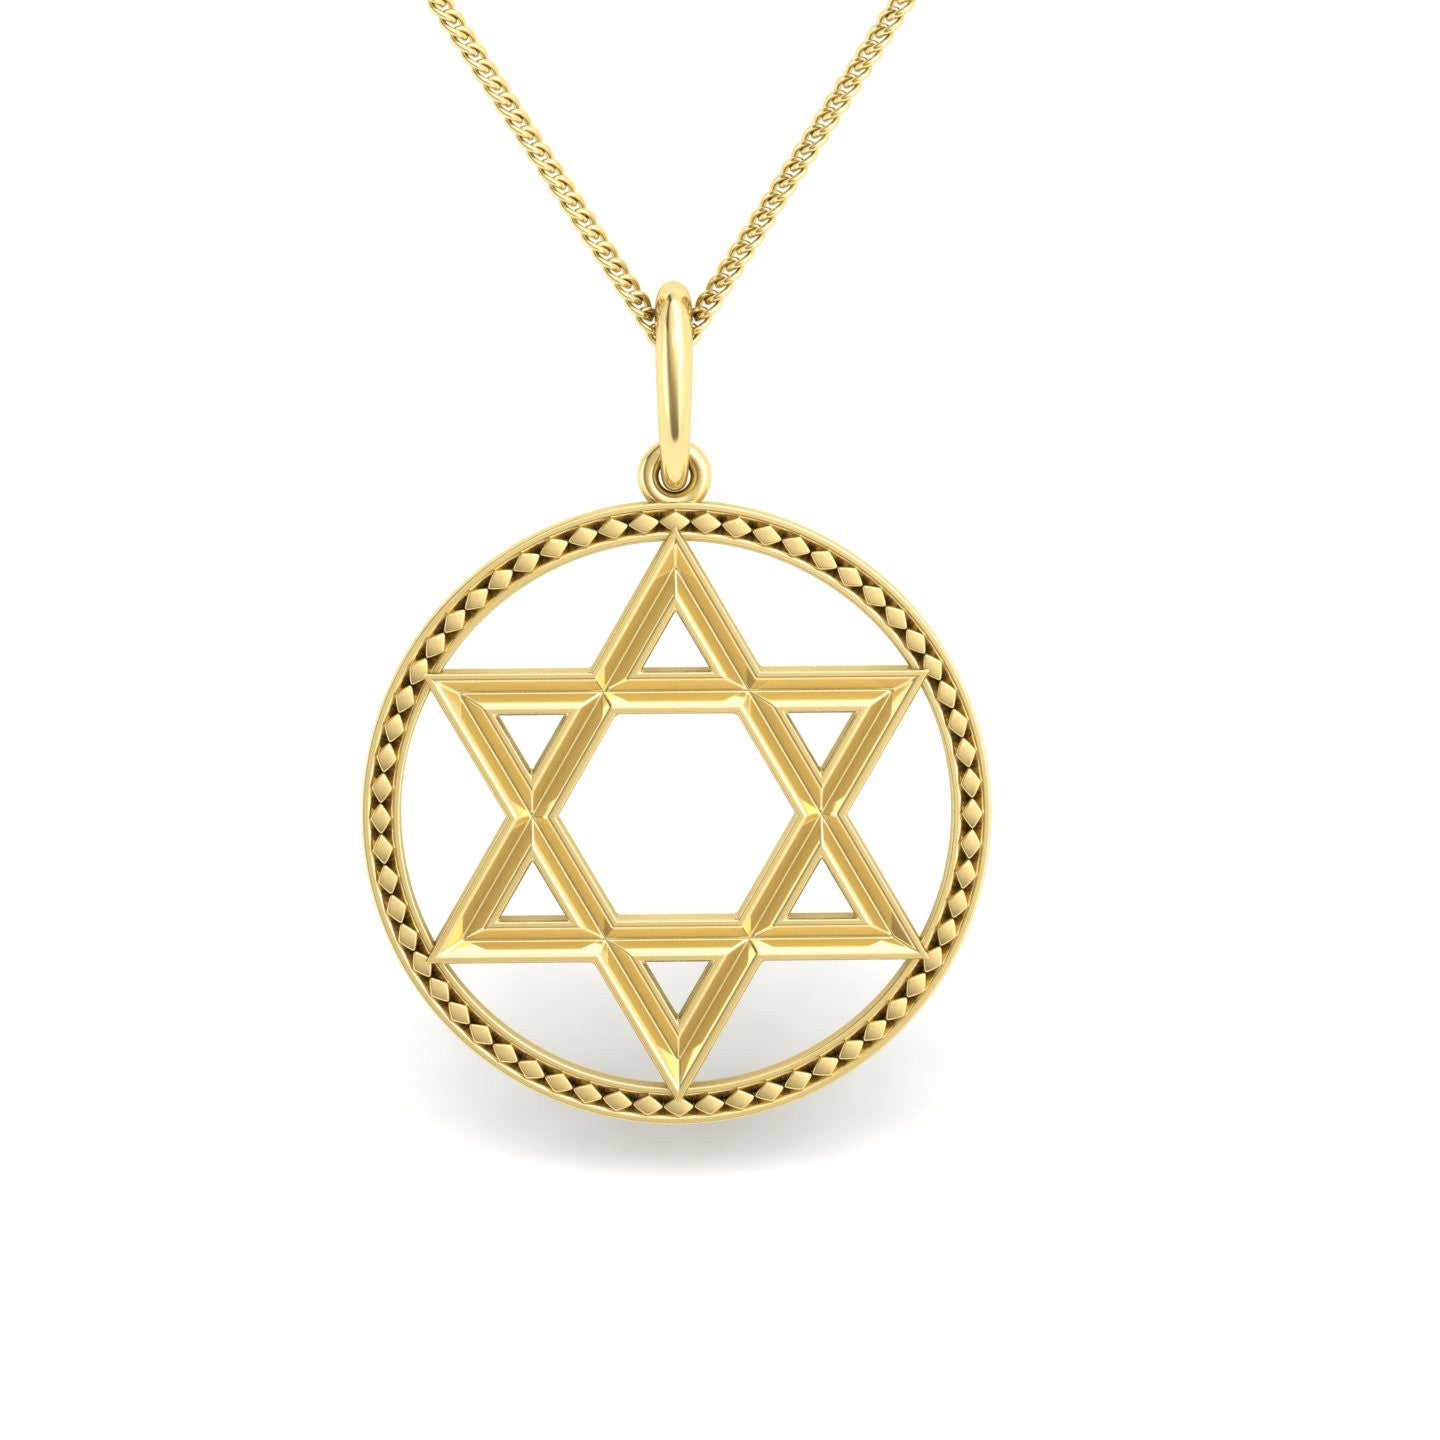 hexagram jewelry star pendant magen necklace item arabic in chain gold palm necklaces color anniyo jewish islam from hand plated hamsa david arab shaped women